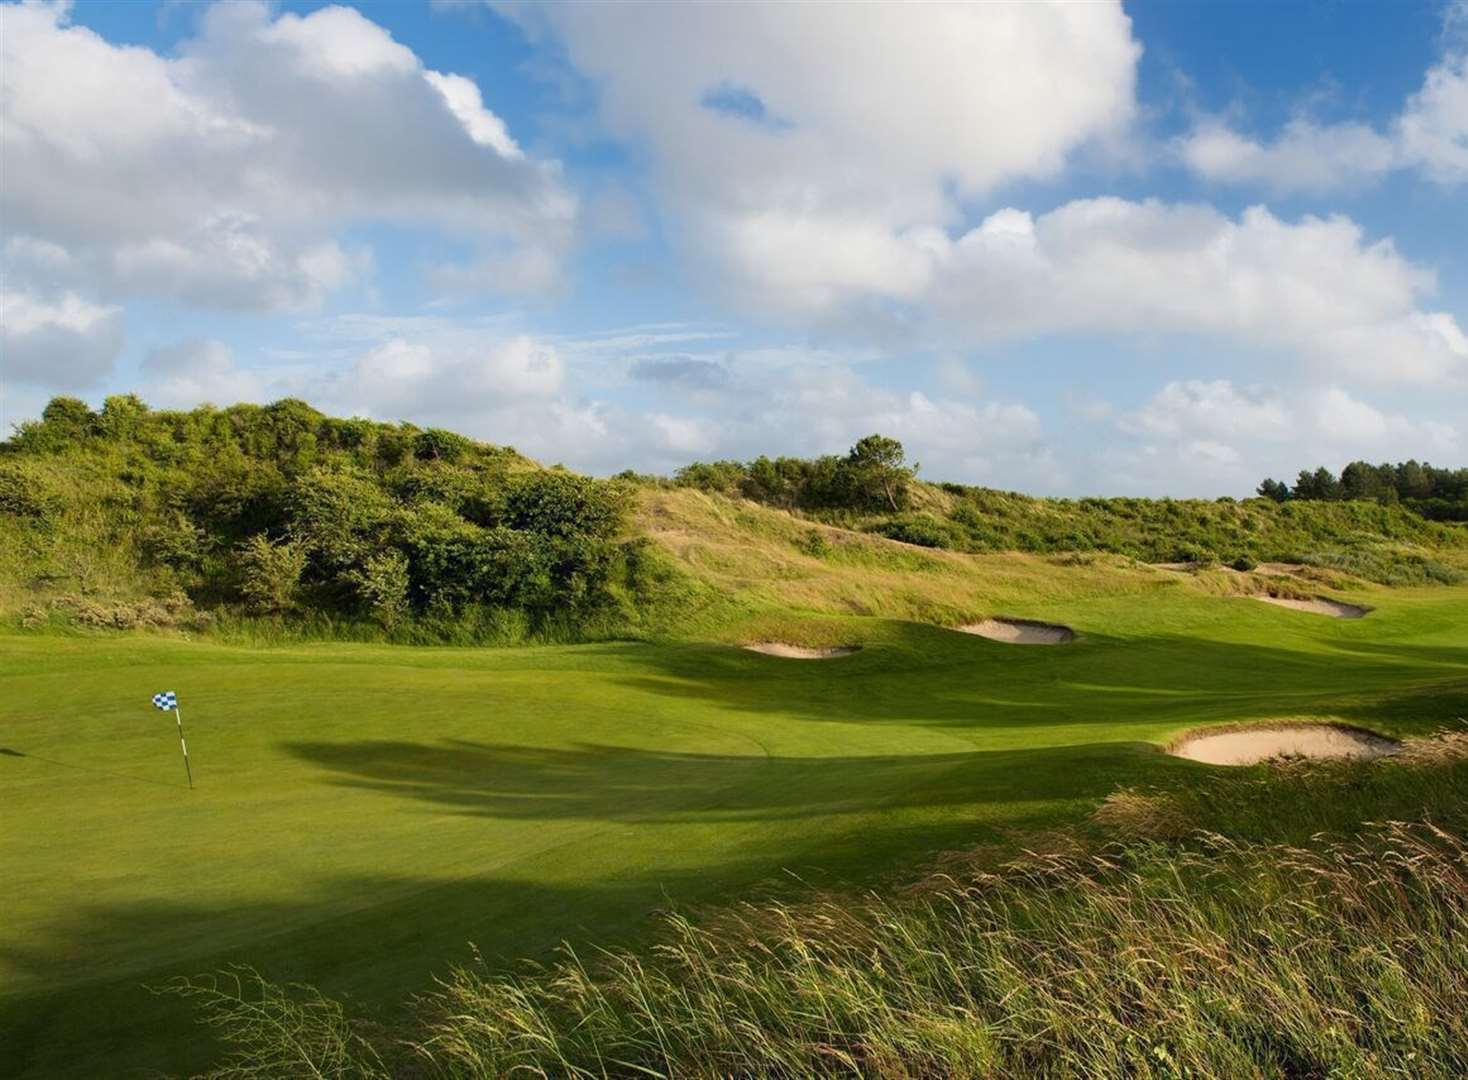 Finding the missing links on La Mer at Le Touquet Golf Resort